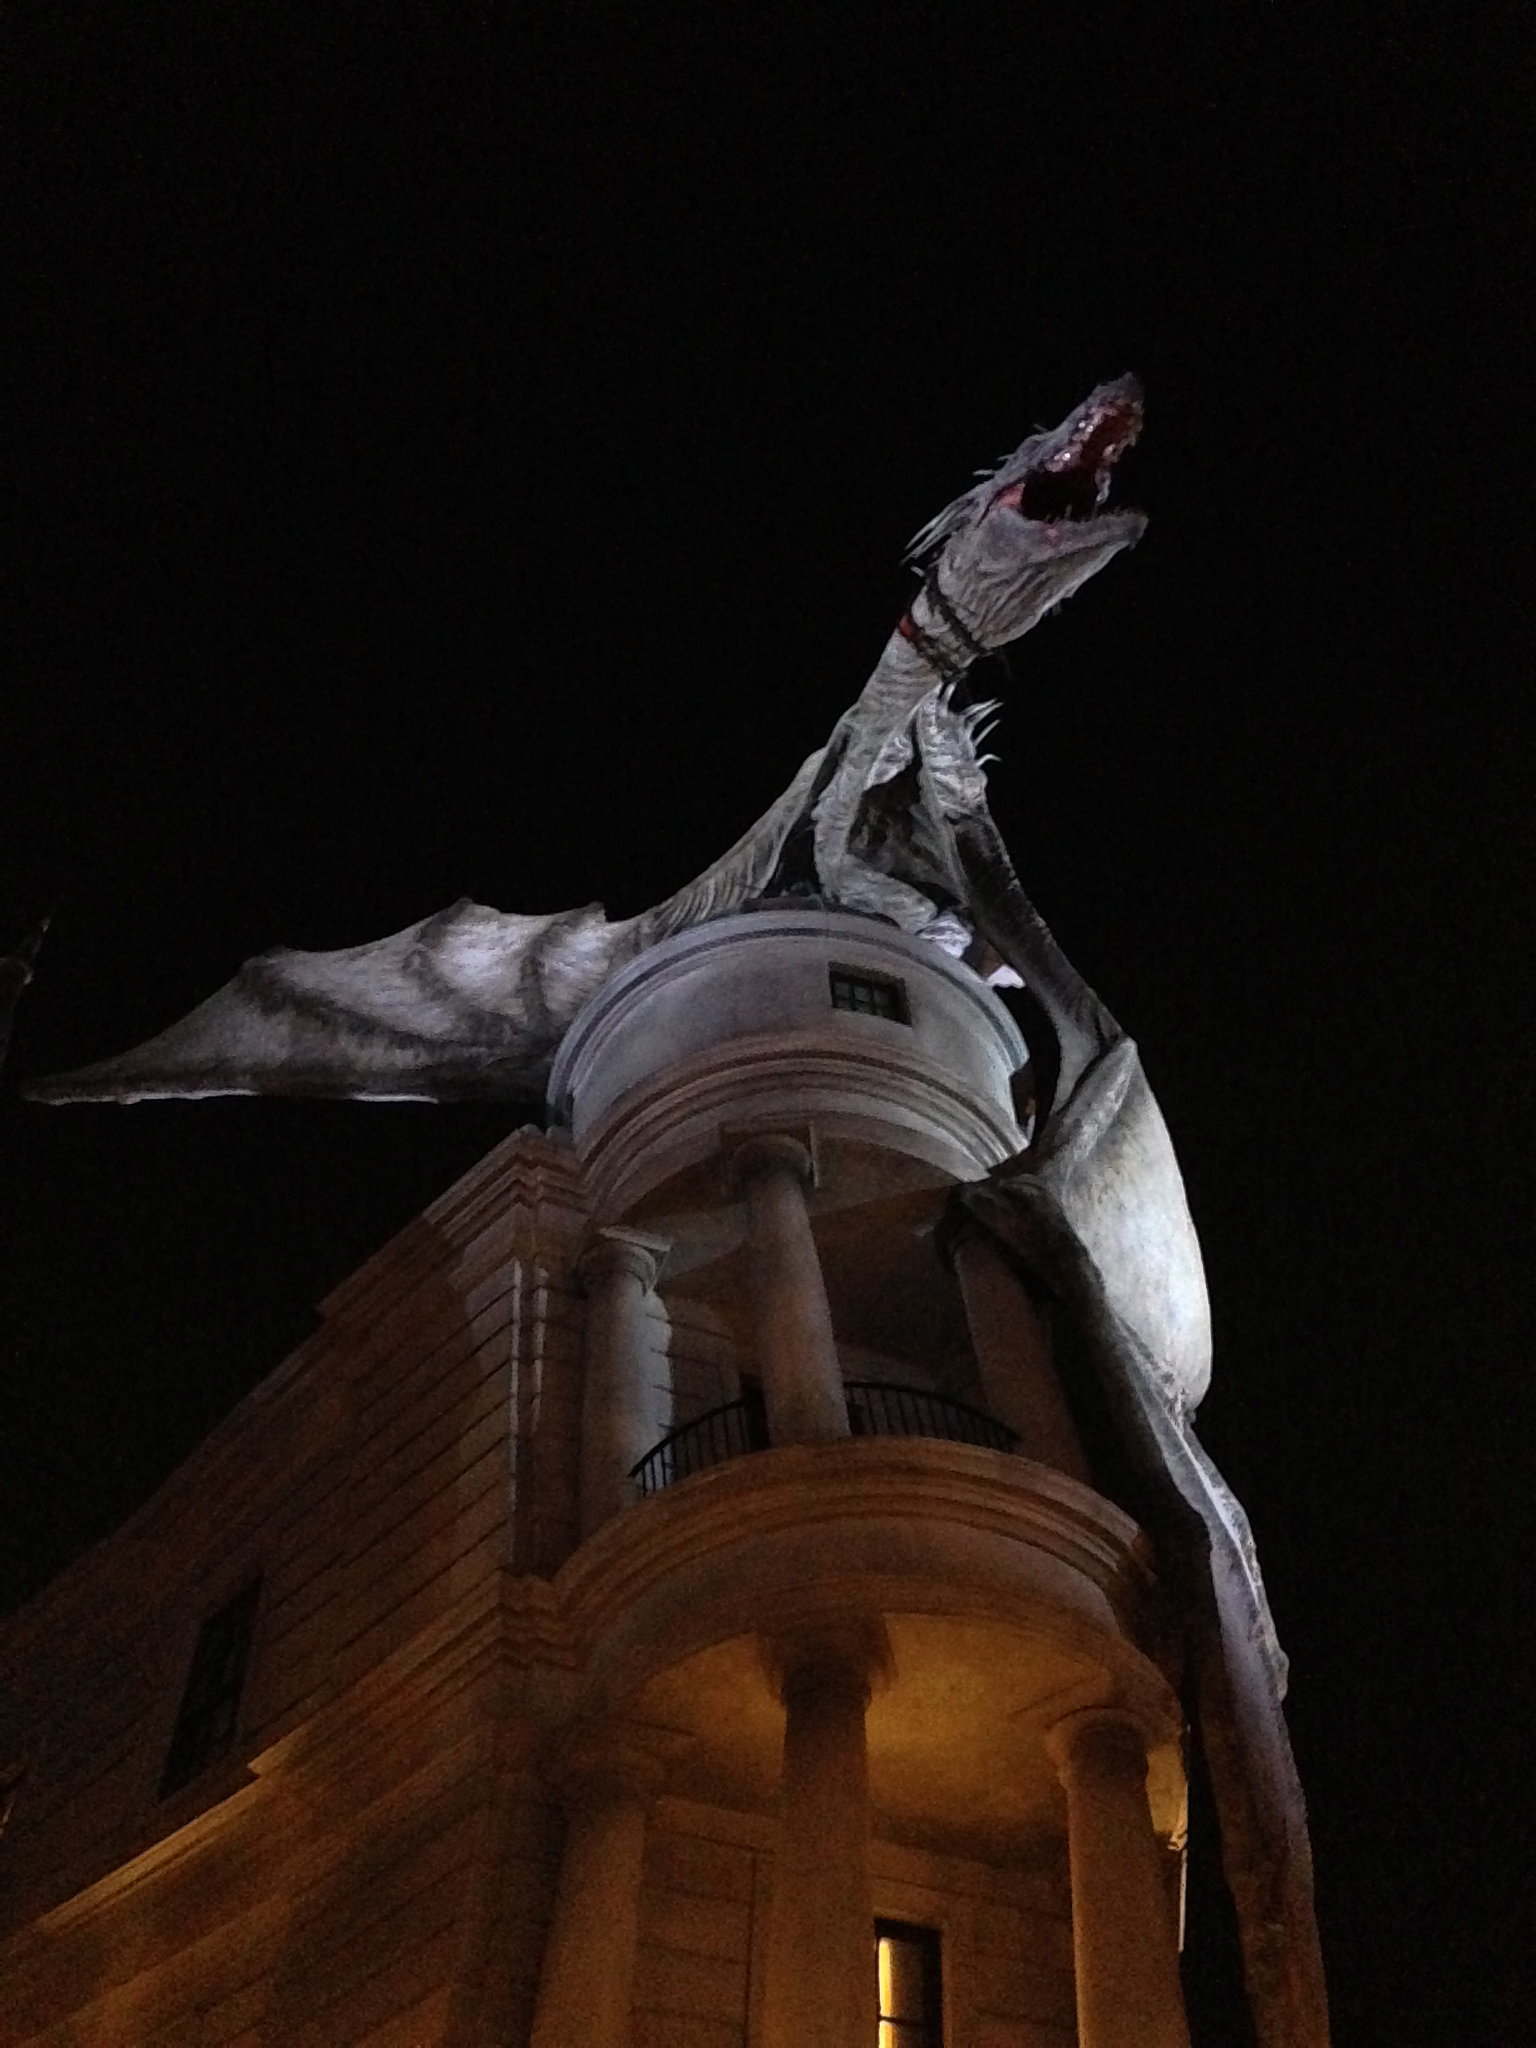 An extremely lifelike Ukrainian Ironbelly dragon sits atop Gringotts Bank and breathes real, hot fire every few minutes.